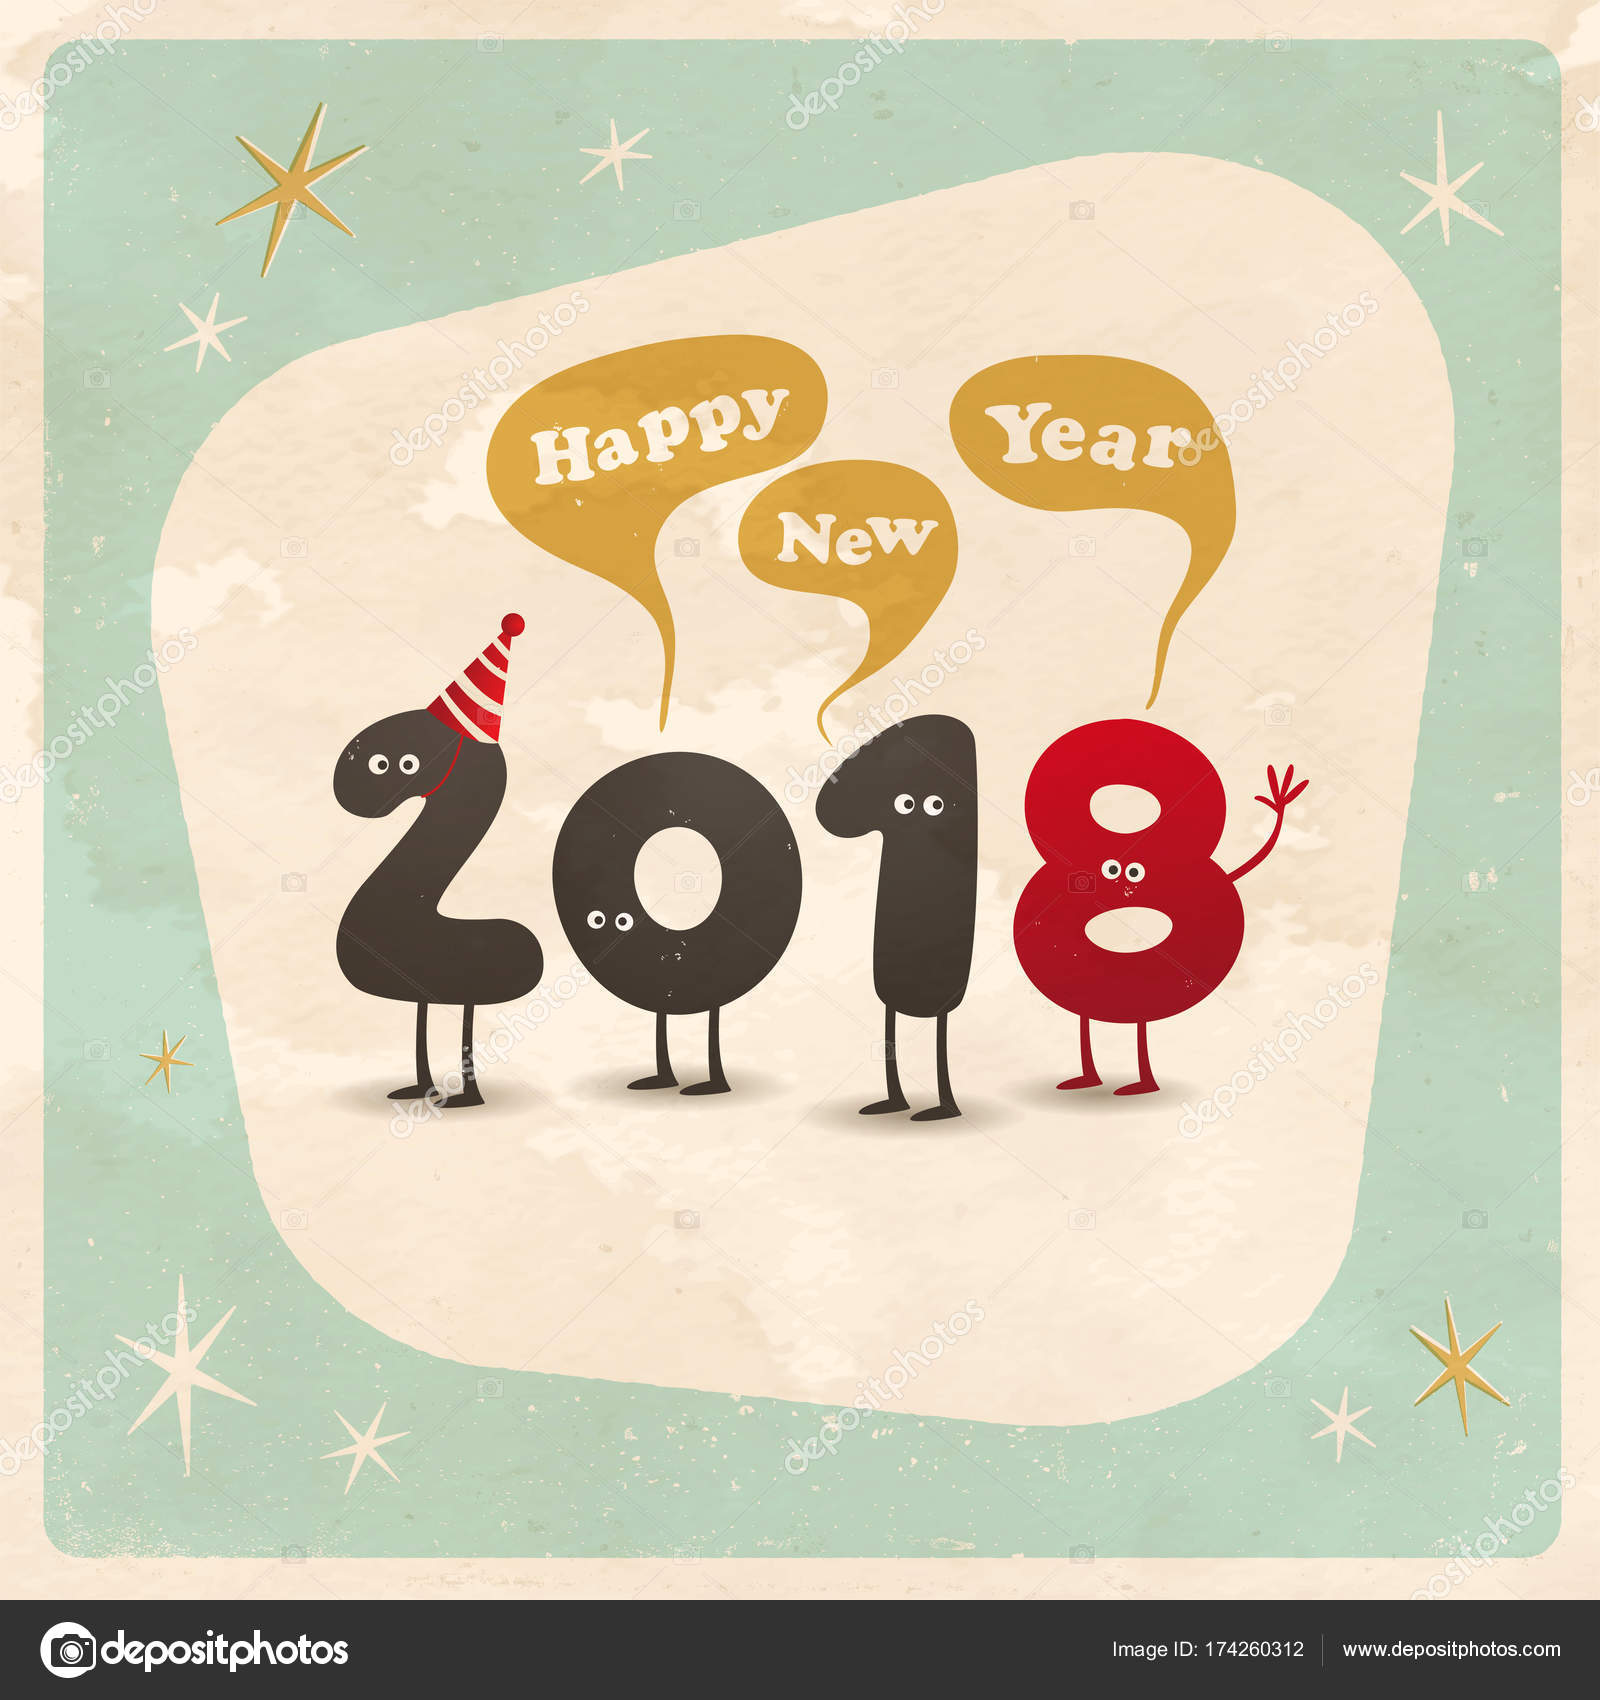 vintage style funny greeting card happy new year 2018 stock vector 174260312